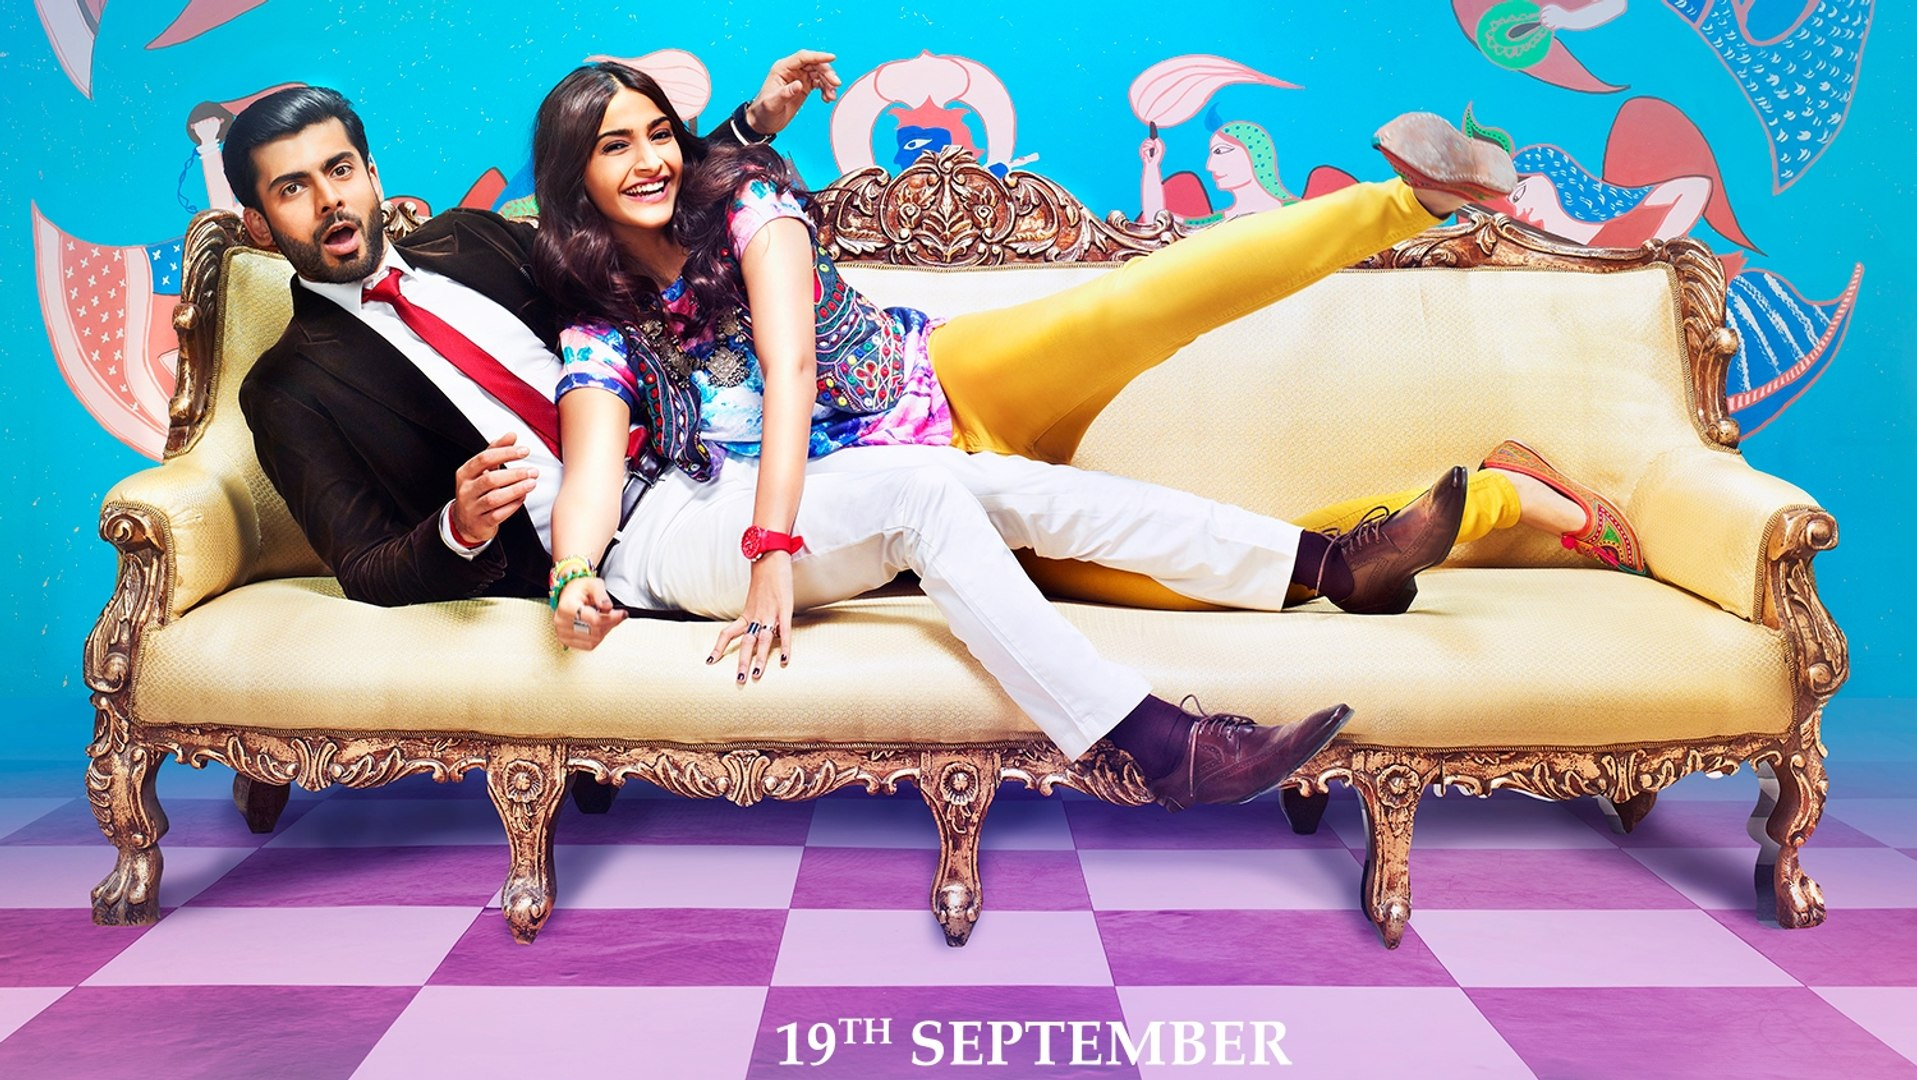 watch khoobsurat online free with english subtitles